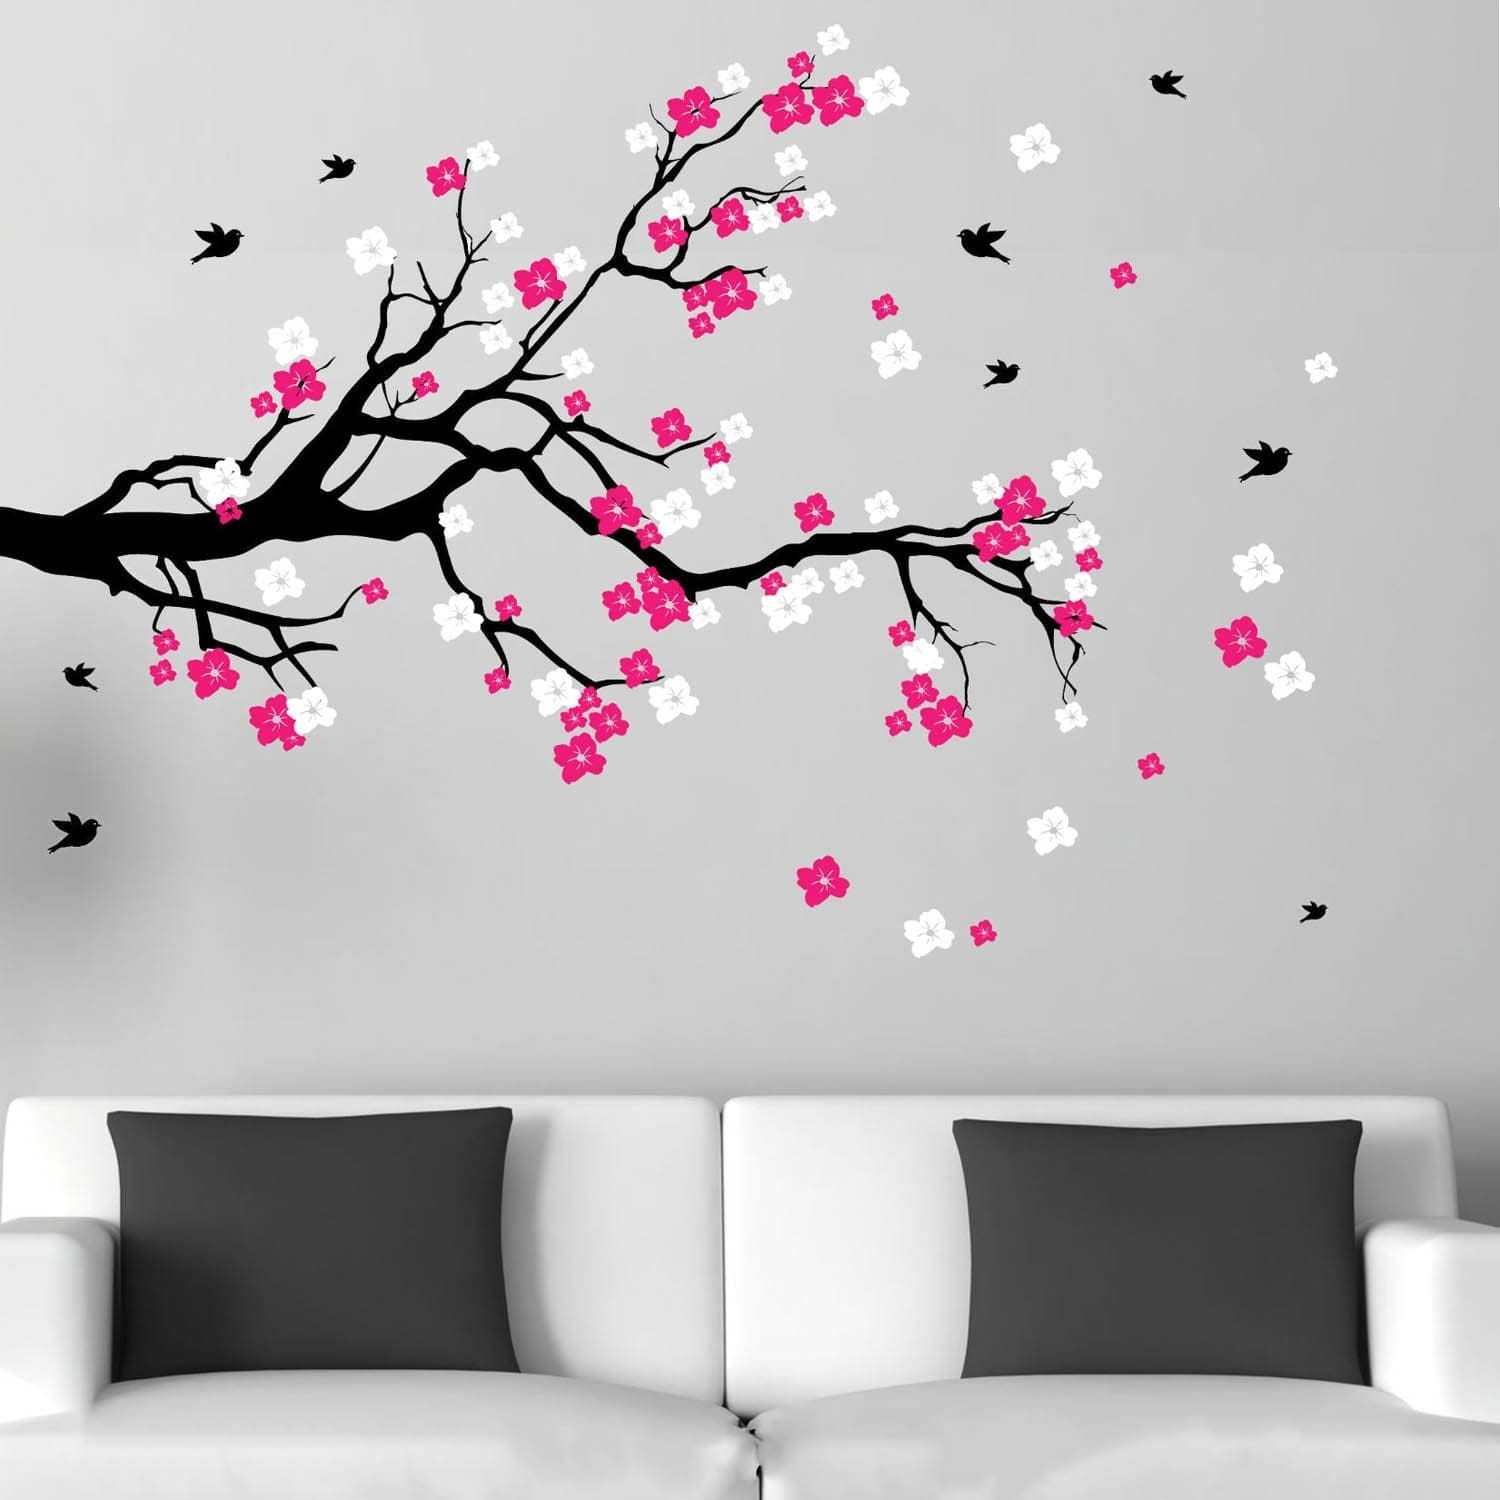 Cherry (Red) Blossom Branch With Birds Vinyl Wall Art Decal (Black within Cherry Blossom Wall Art (Image 8 of 20)